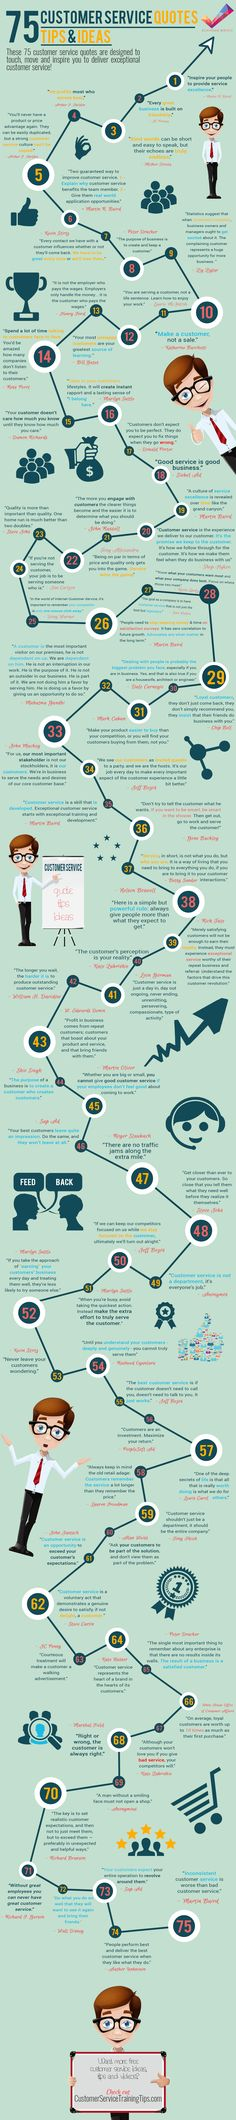 75 Customer Service Quotes Infographic